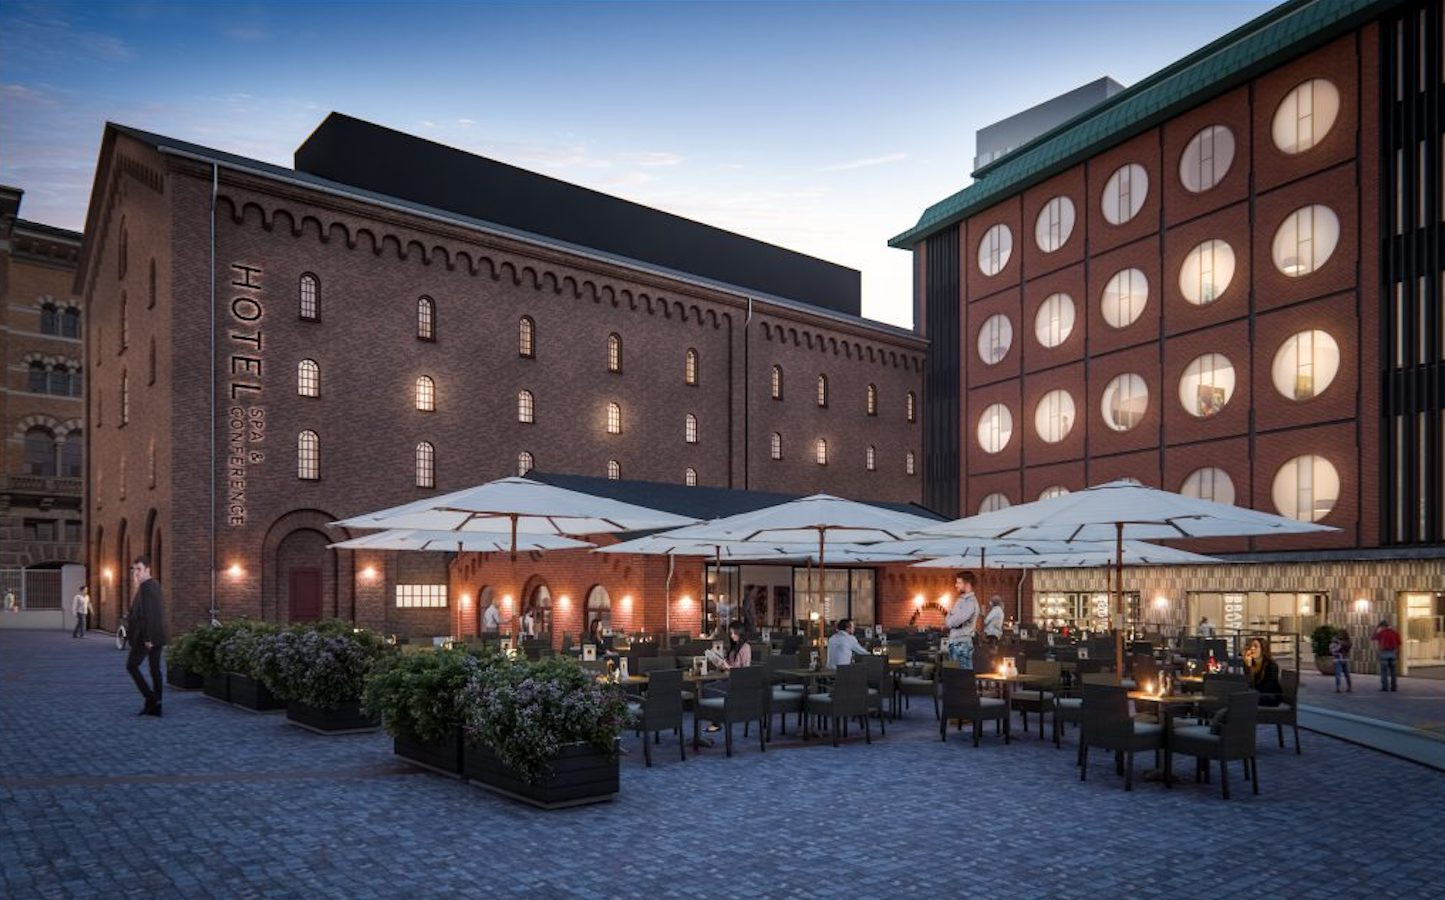 Hotel Ottilia, Brøchner Hotels, formerly Carlsbergbyen Breweries. Photo: Cadwalk